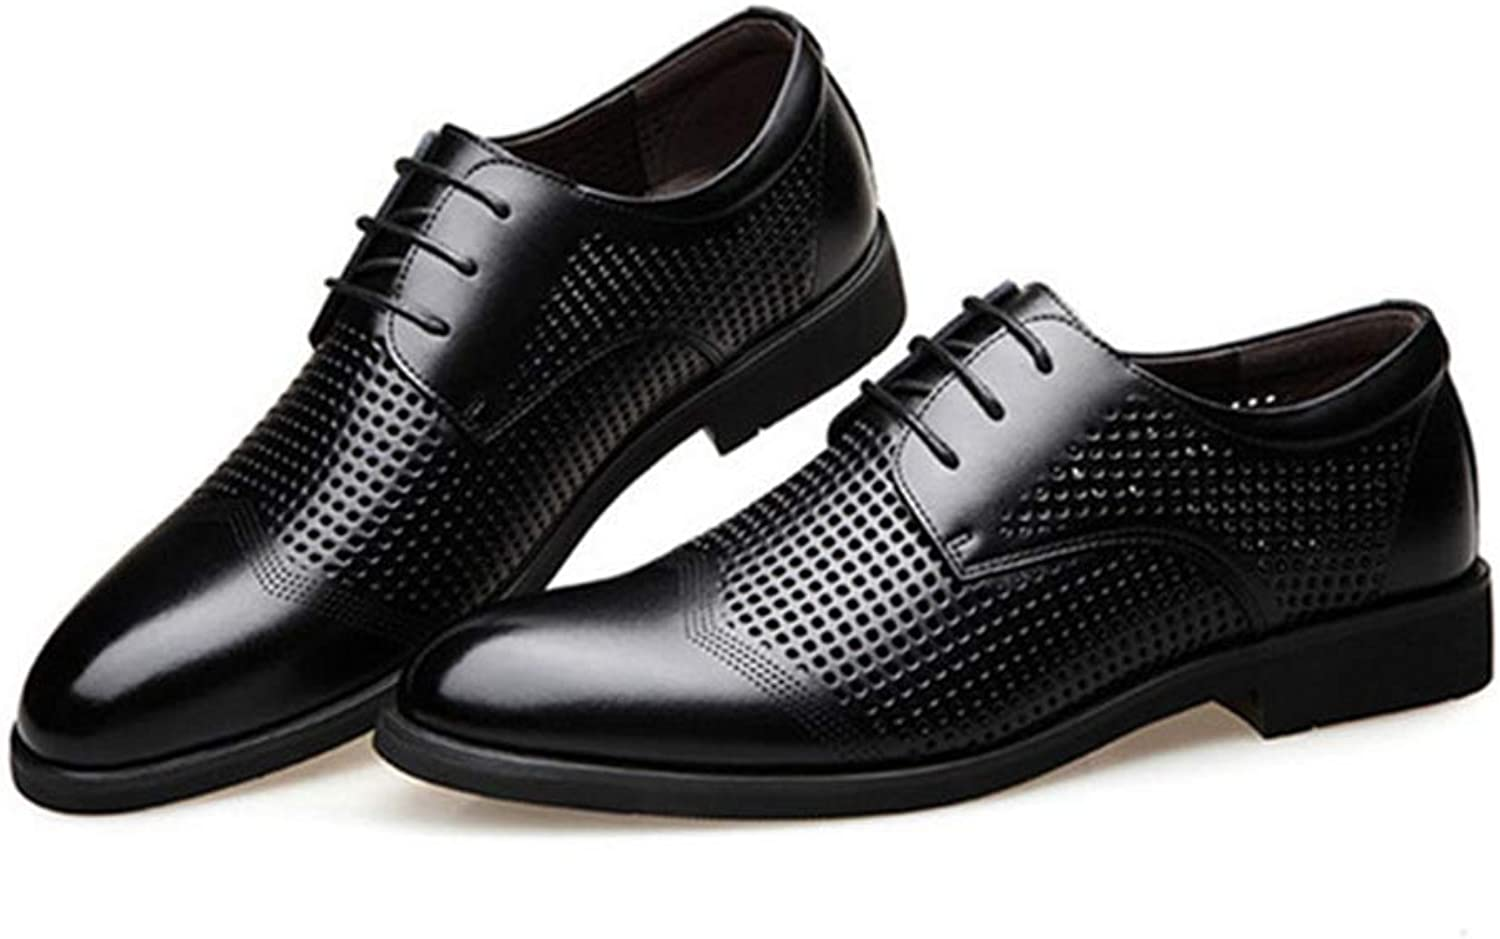 Men Dress shoes Genuine Leather Hollow Out Oxfords shoes Formal Men Wedding Party Brogue shoes Business Leather Footwear